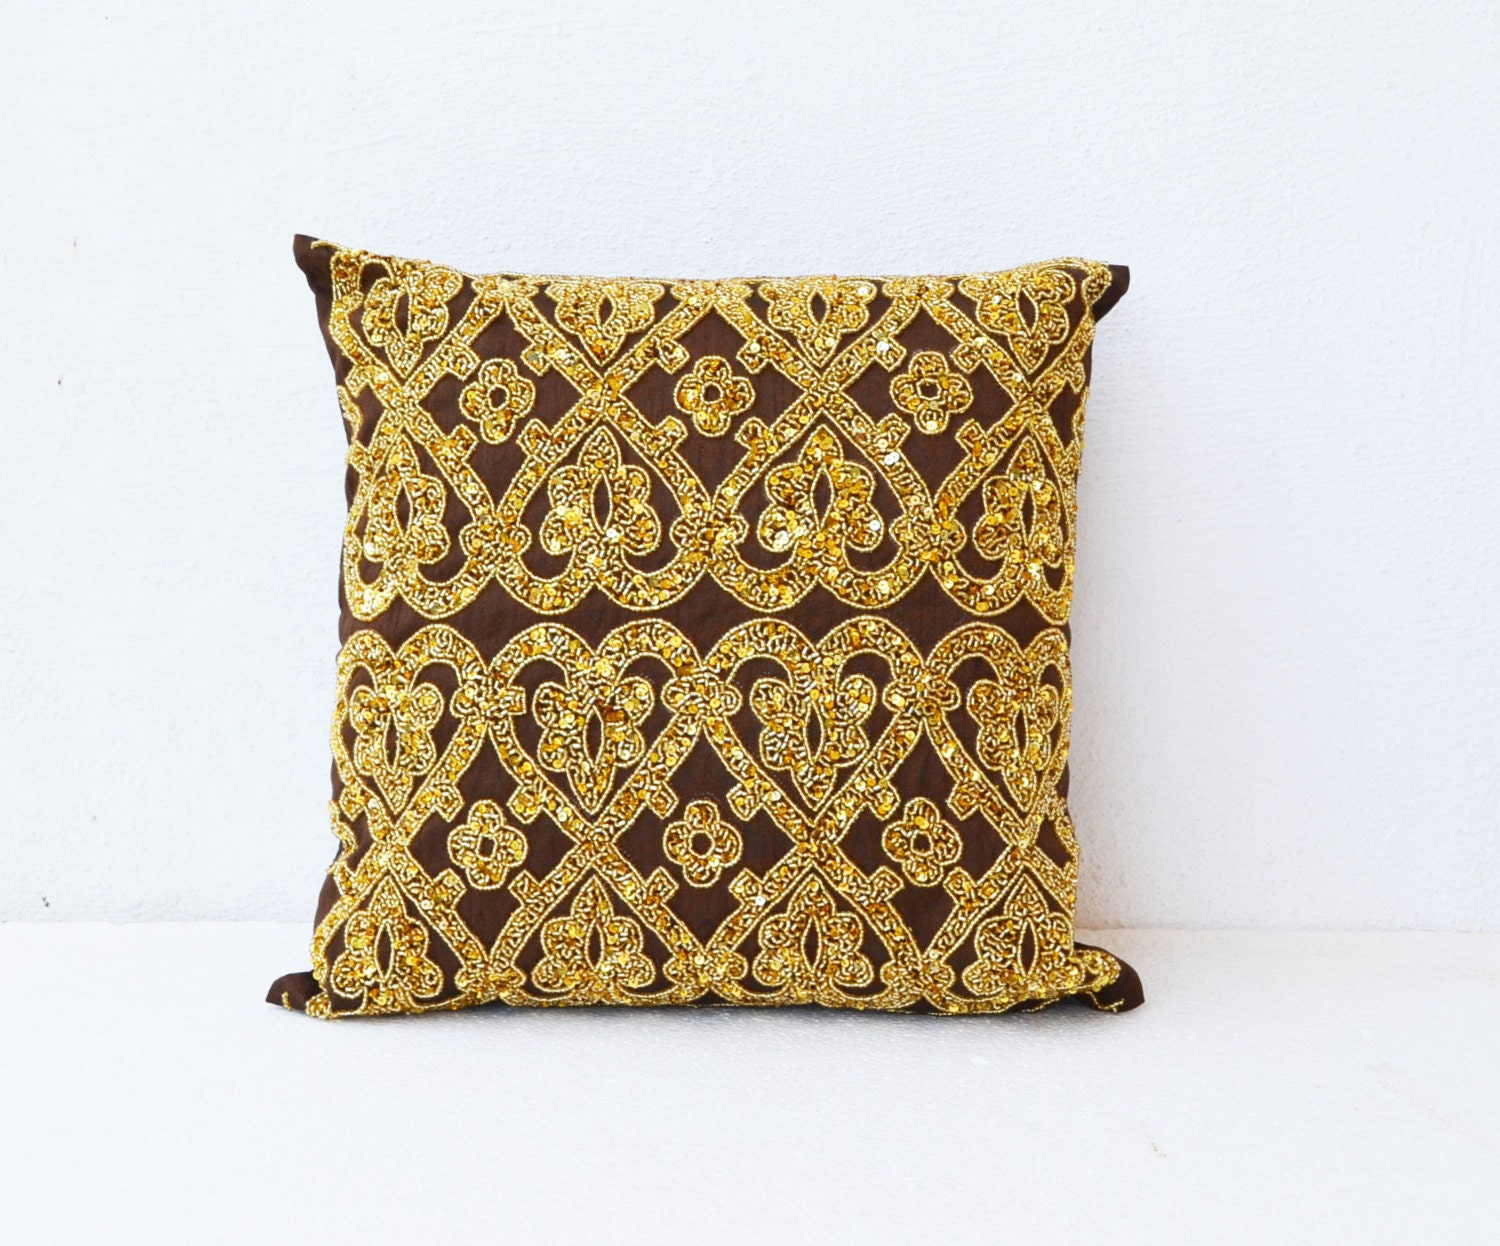 Decorative Pillows With Beads : Brown throw pillows with bead sequin detail Gold pillow Silk